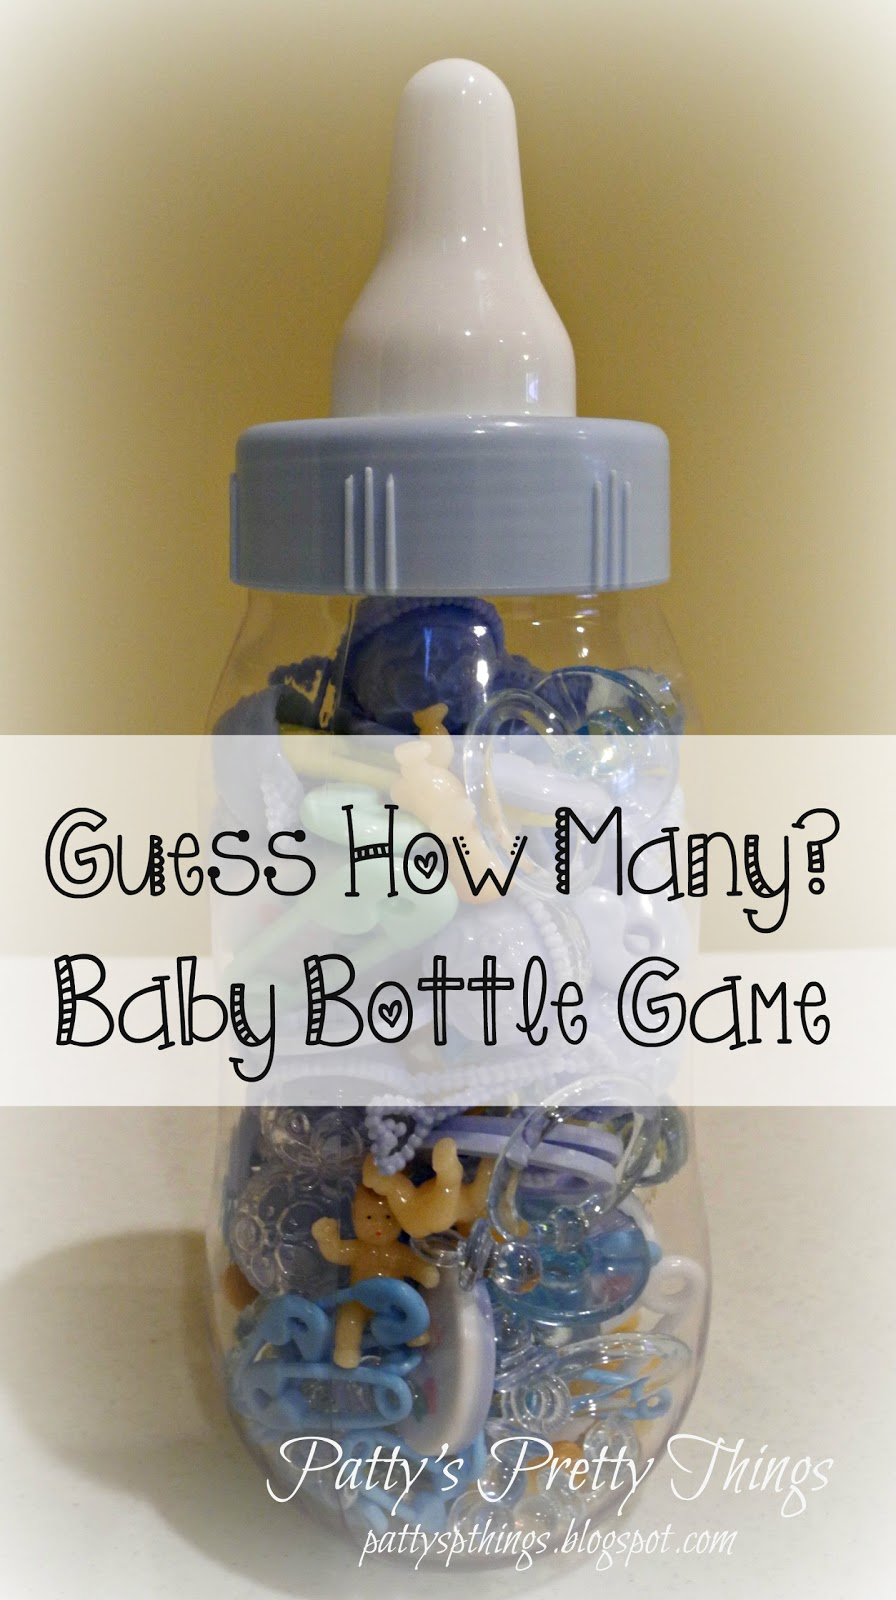 Patty Antle S Prettys Guess How Many Baby Bottle Game